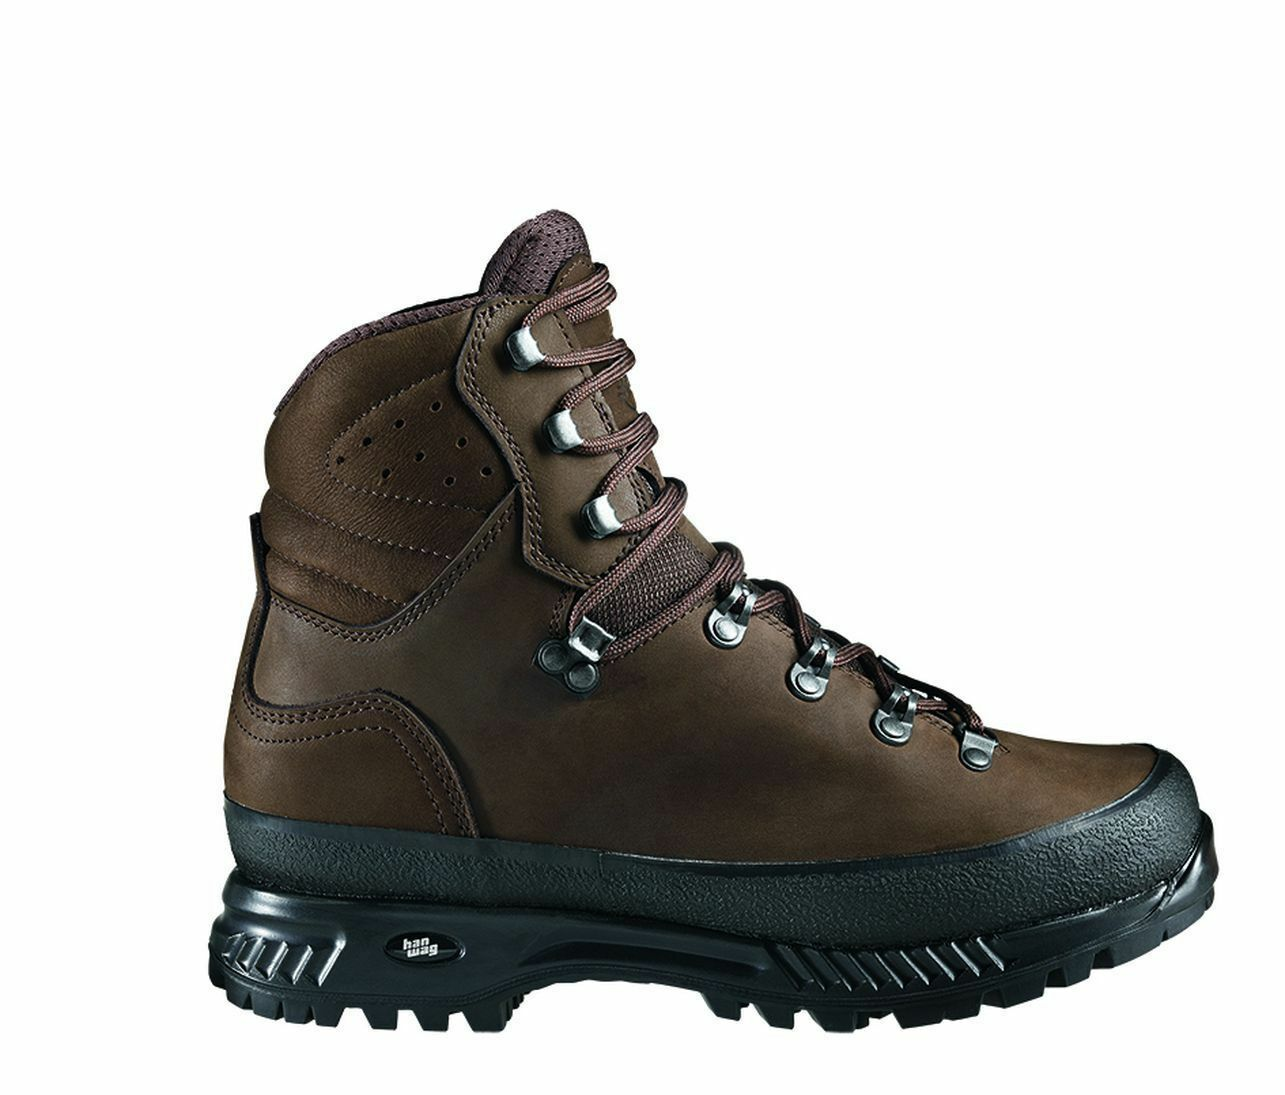 Hanwag Mountain shoes Nazcat Leather Men Size 12 -  47 Earth  save 50%-75%off